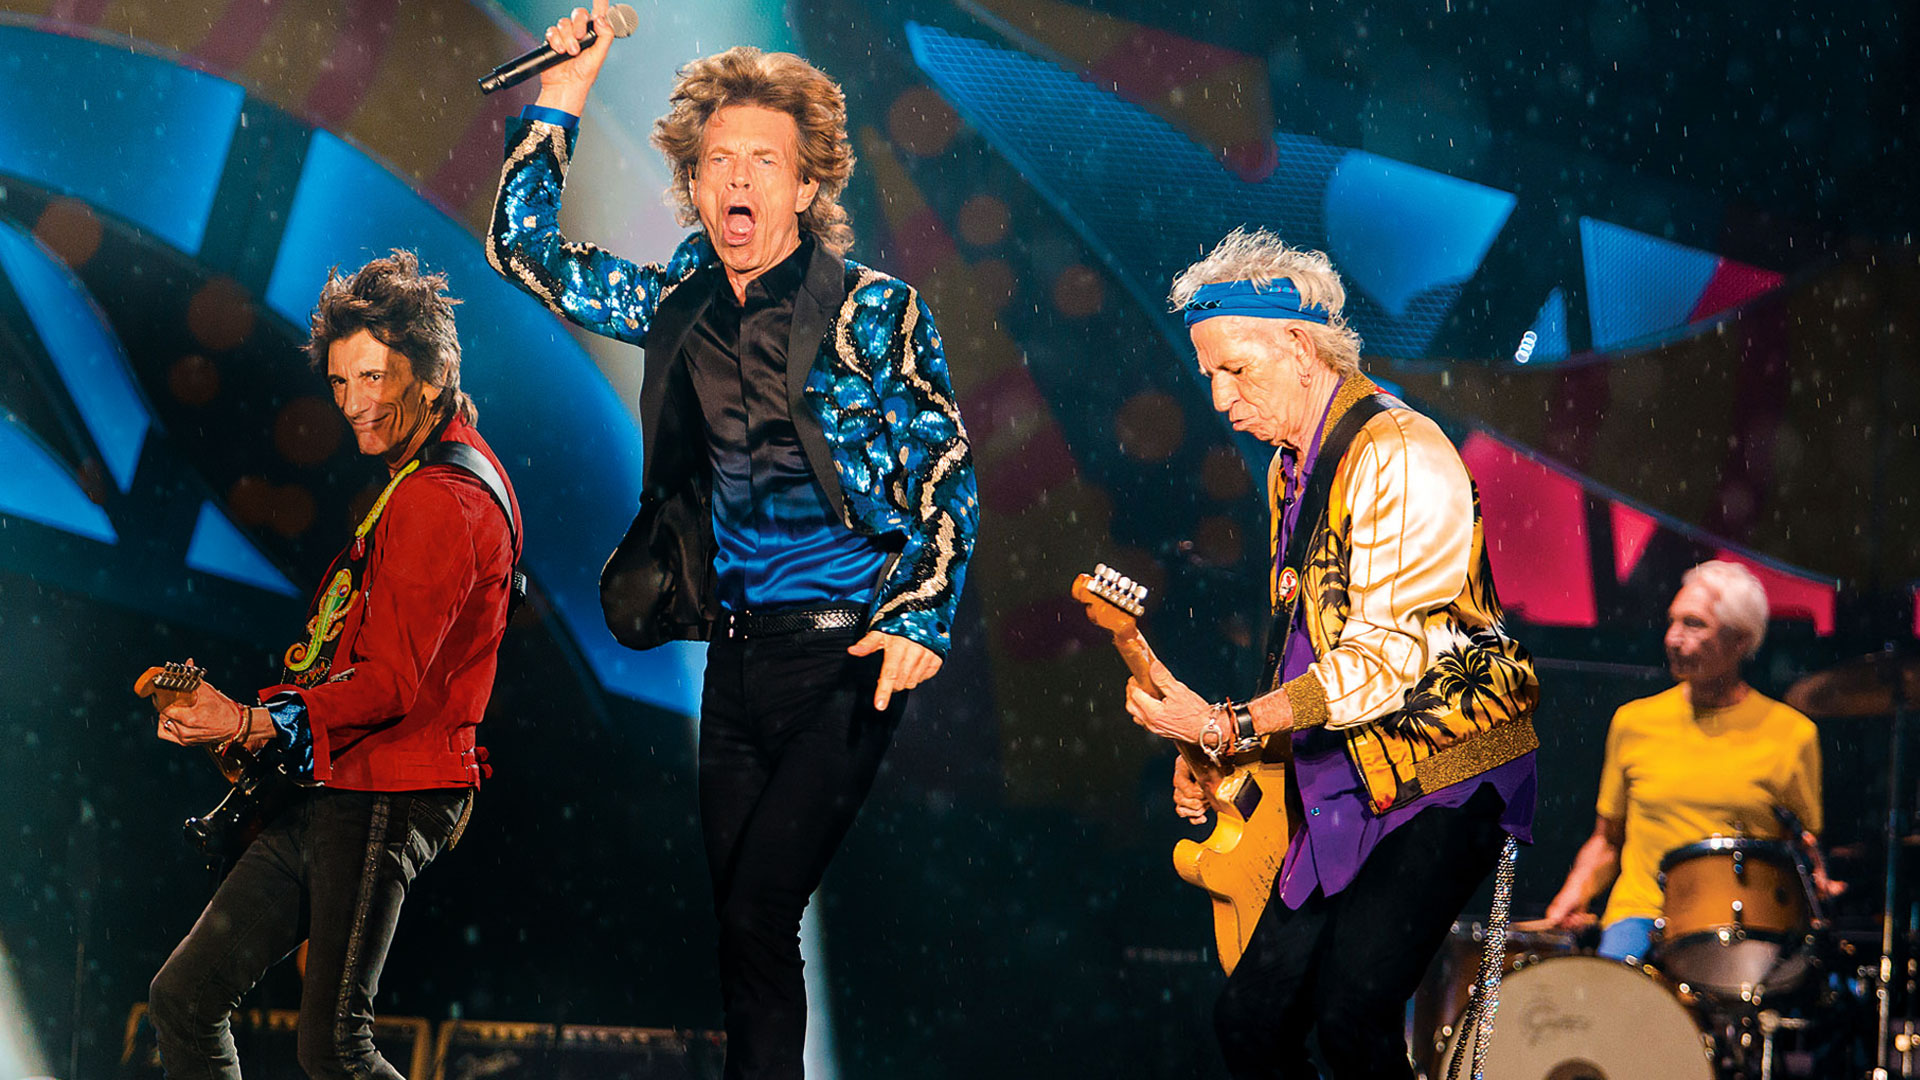 jeronimo-martins-the-rolling-stones-1-1